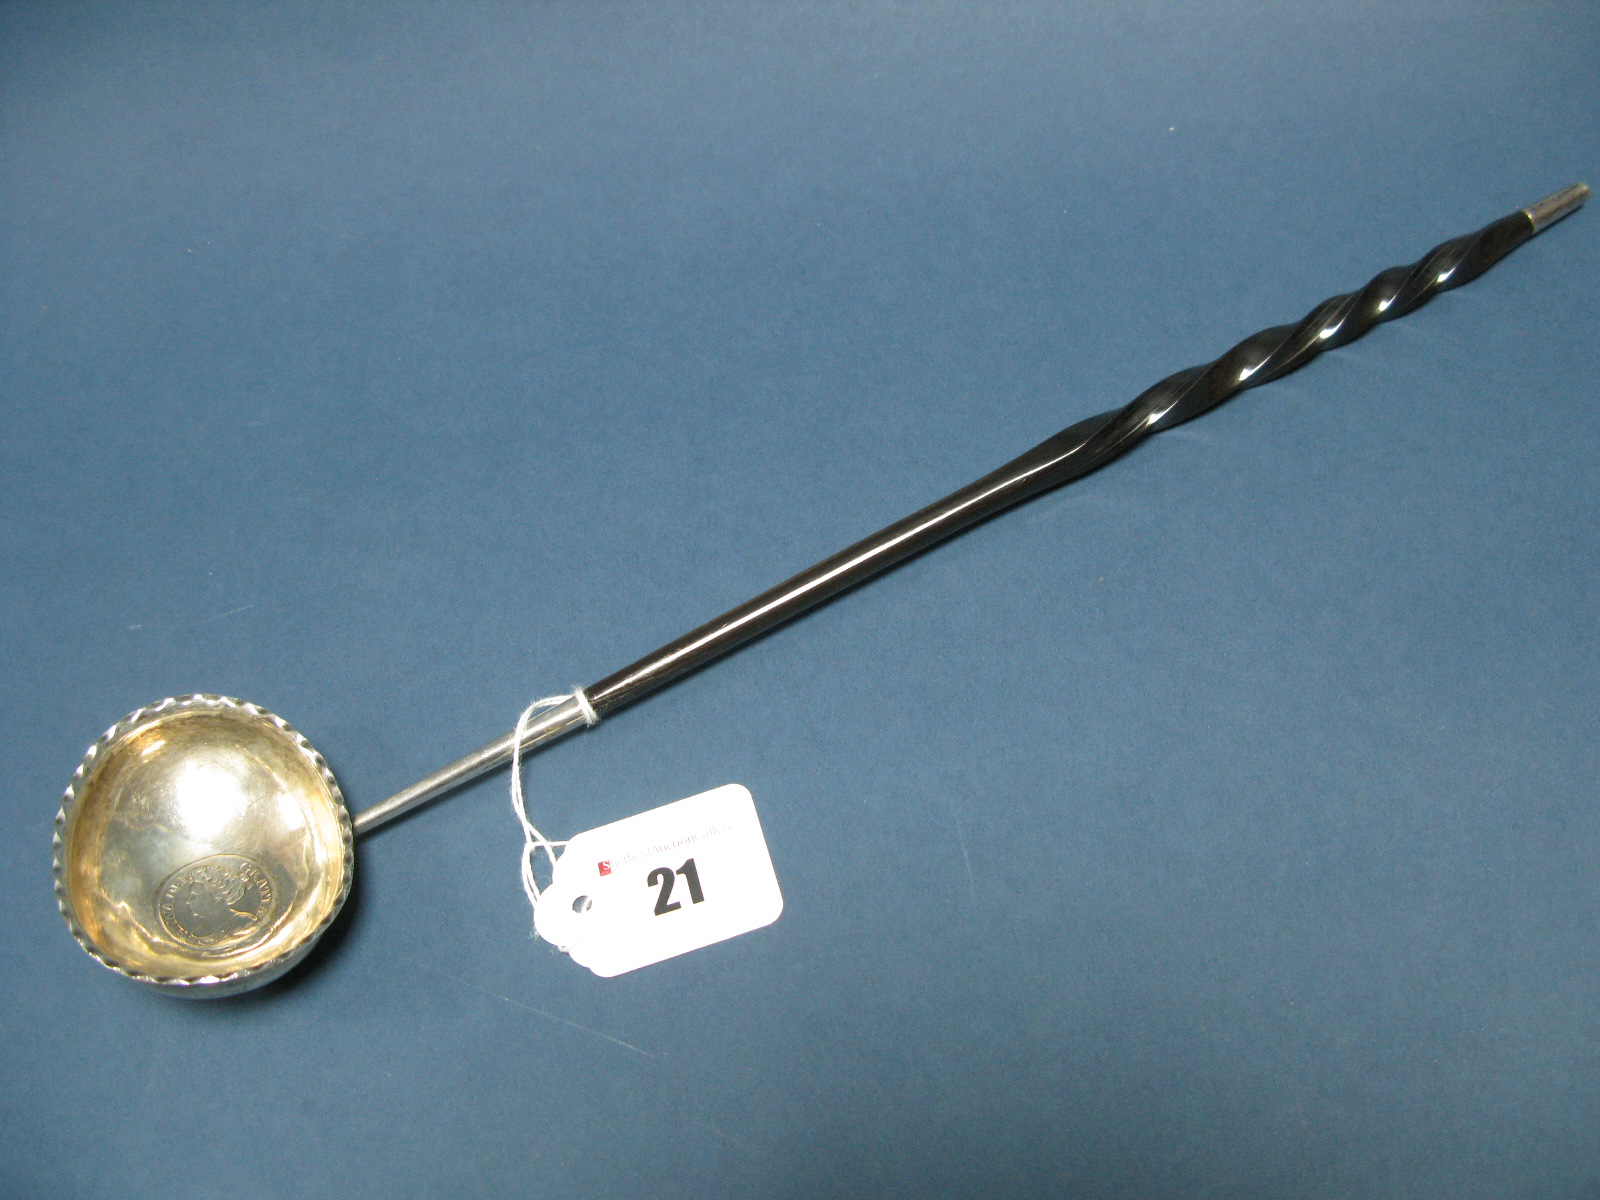 Lot 21 - A Georgian Toddy Ladle, the oval bowl with textured edge and coin inset detail, overall length 36.